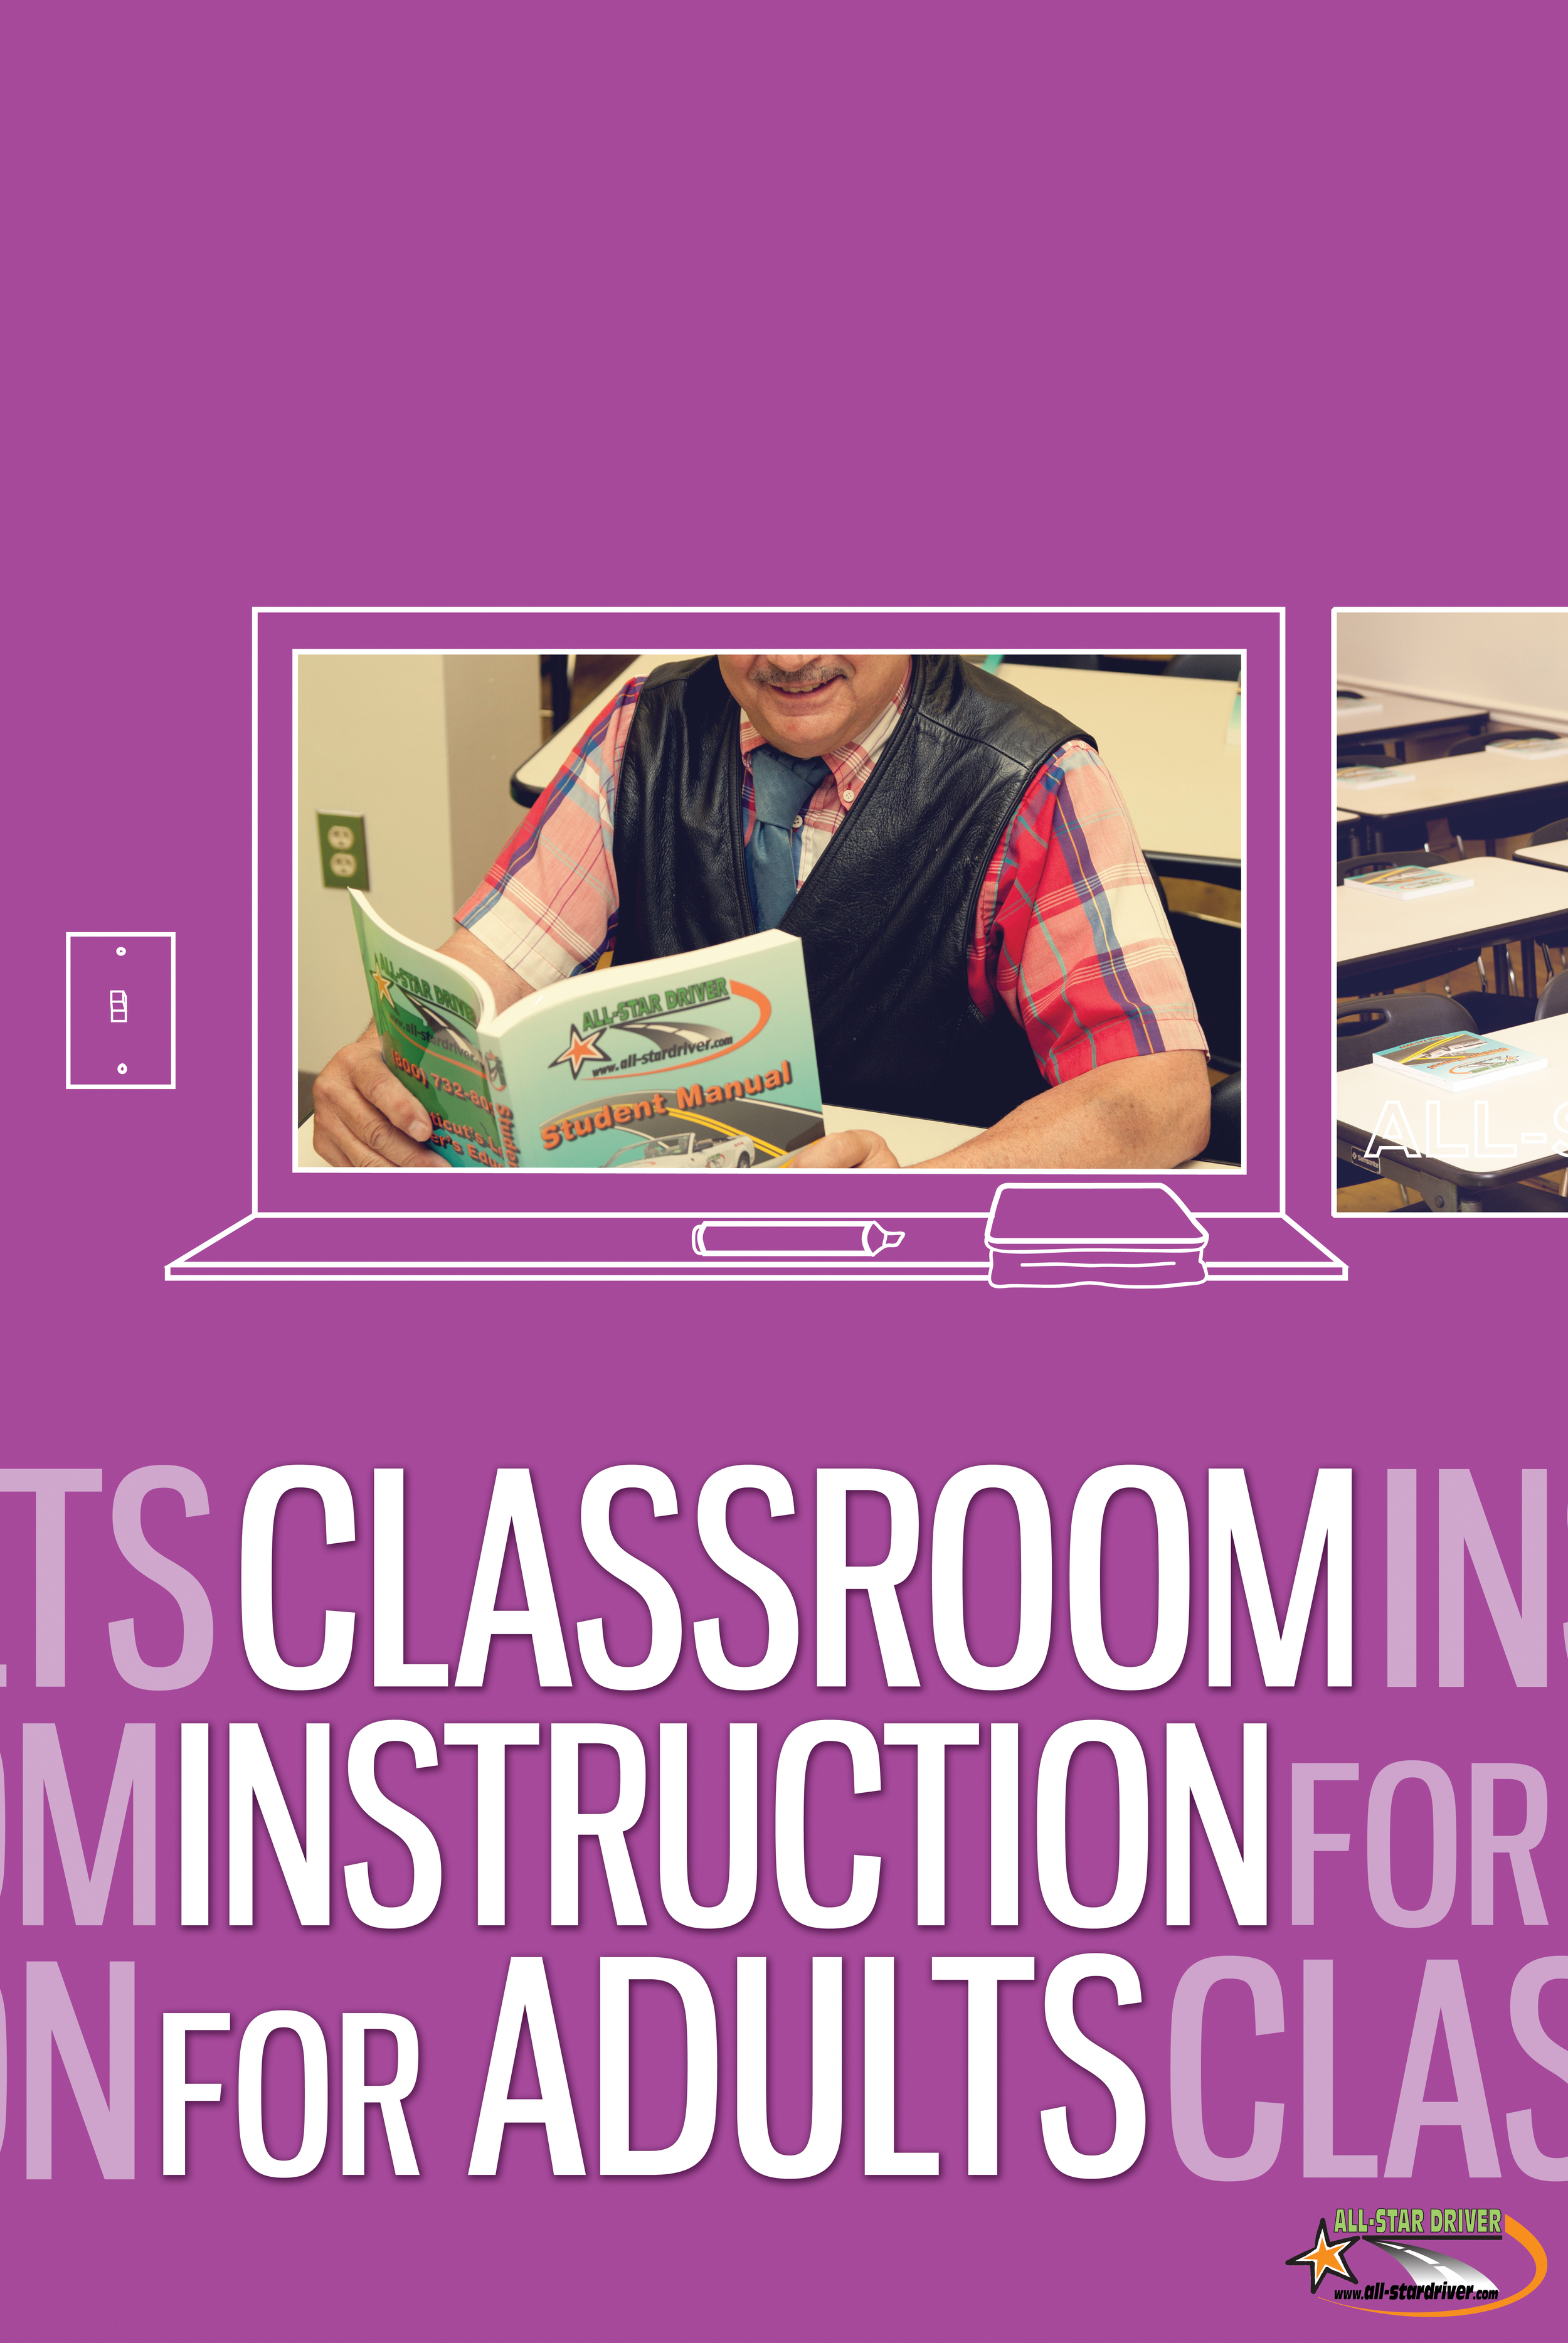 ASD Poster Classroom Driving for Adults.jpg